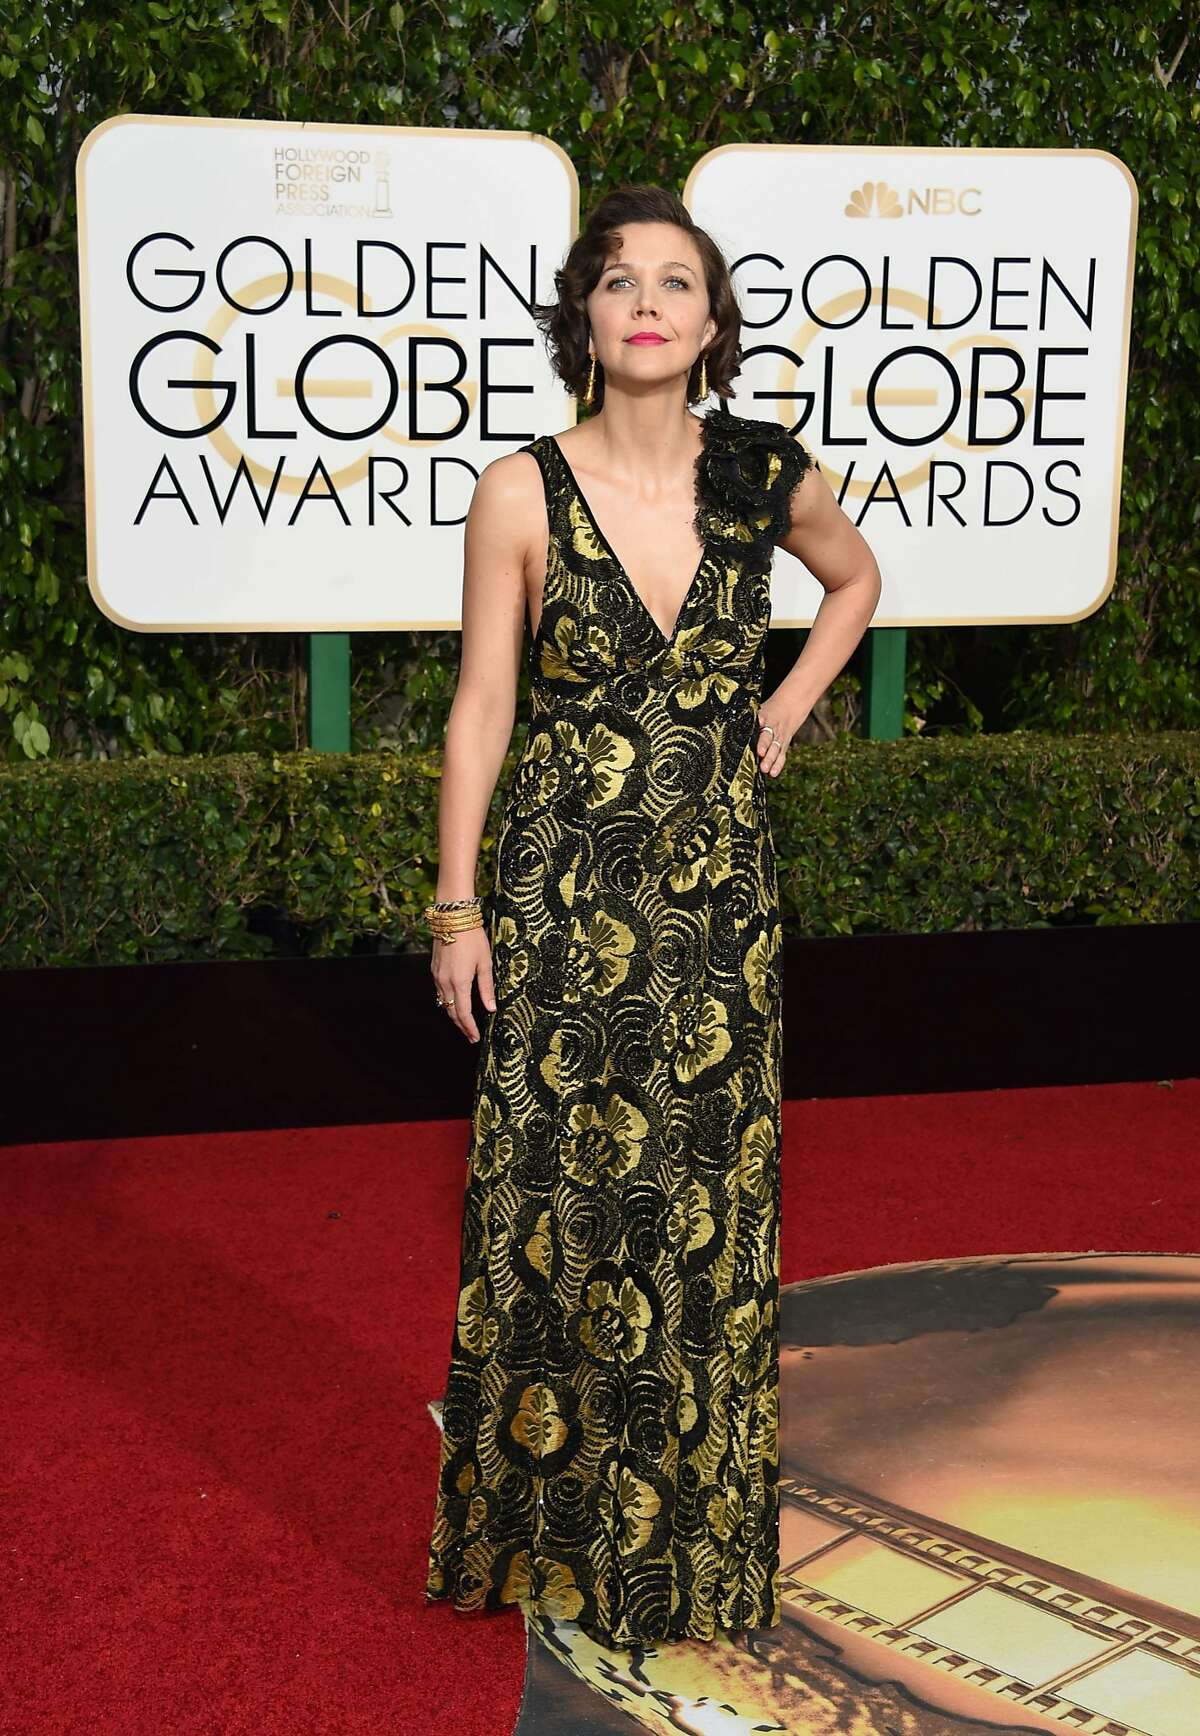 Actress Maggie Gyllenhaal arrives for the 73nd annual Golden Globe Awards, January 10, 2016, at the Beverly Hilton Hotel in Beverly Hills, California.